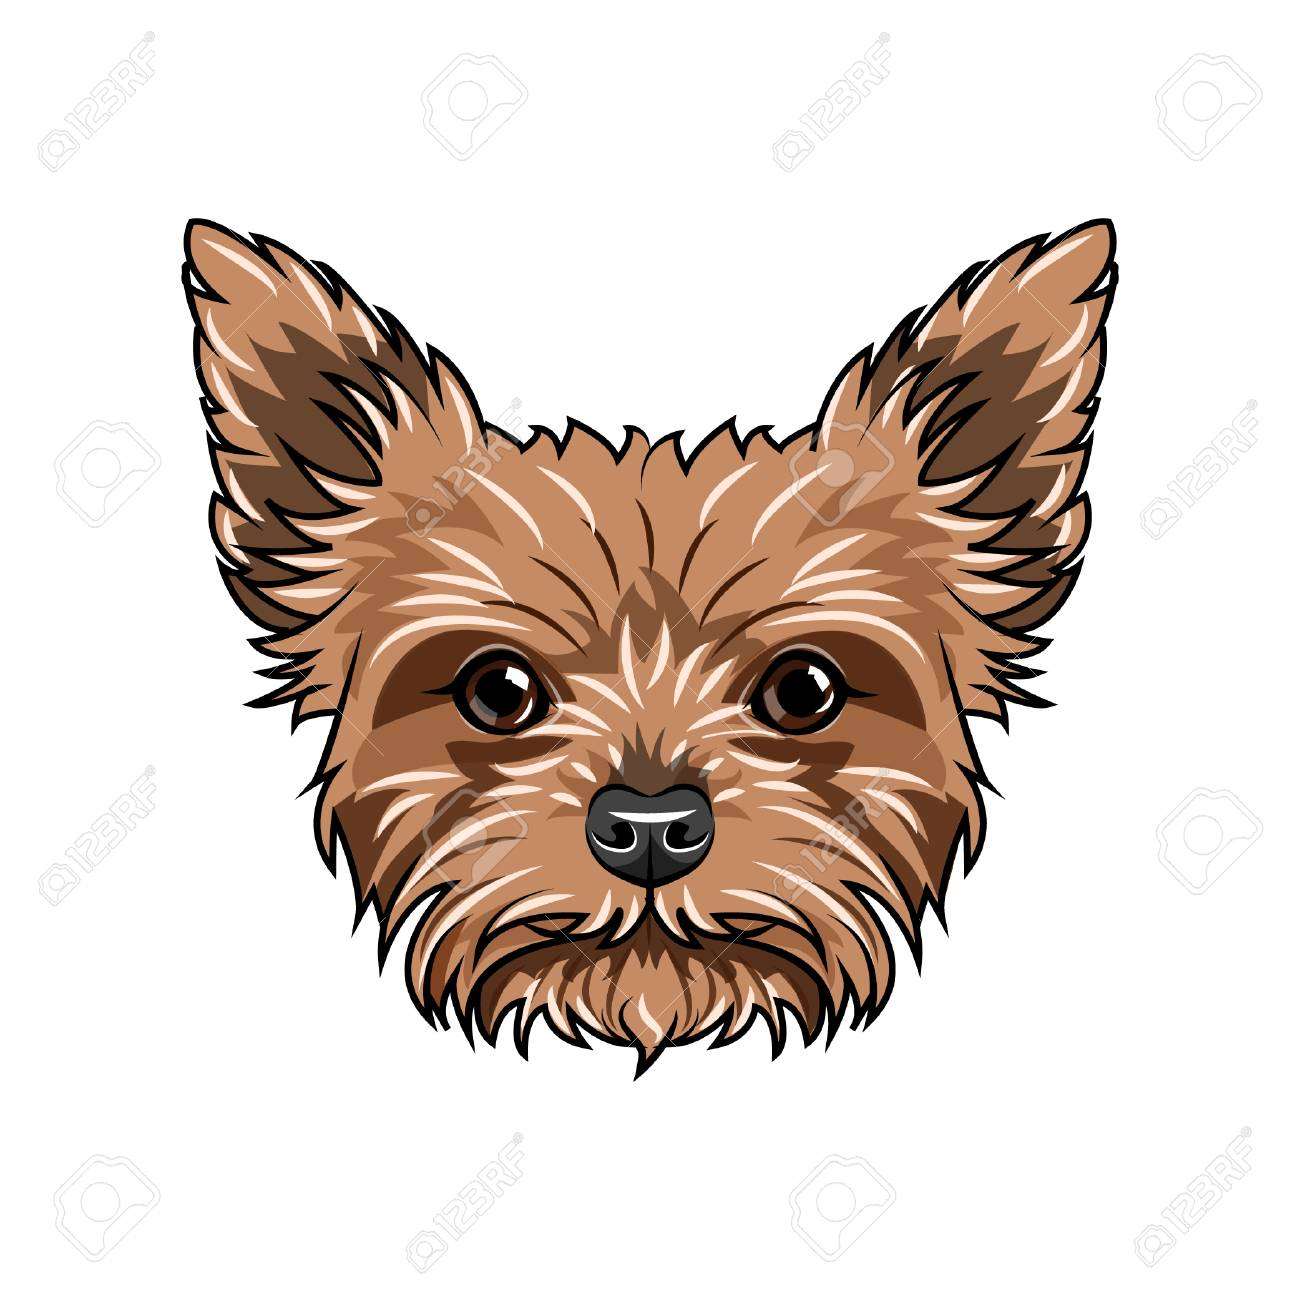 Yorkshire Terrier Dog Portrait Dog Face Head Muzzle Yorkshire Royalty Free Cliparts Vectors And Stock Illustration Image 100612113